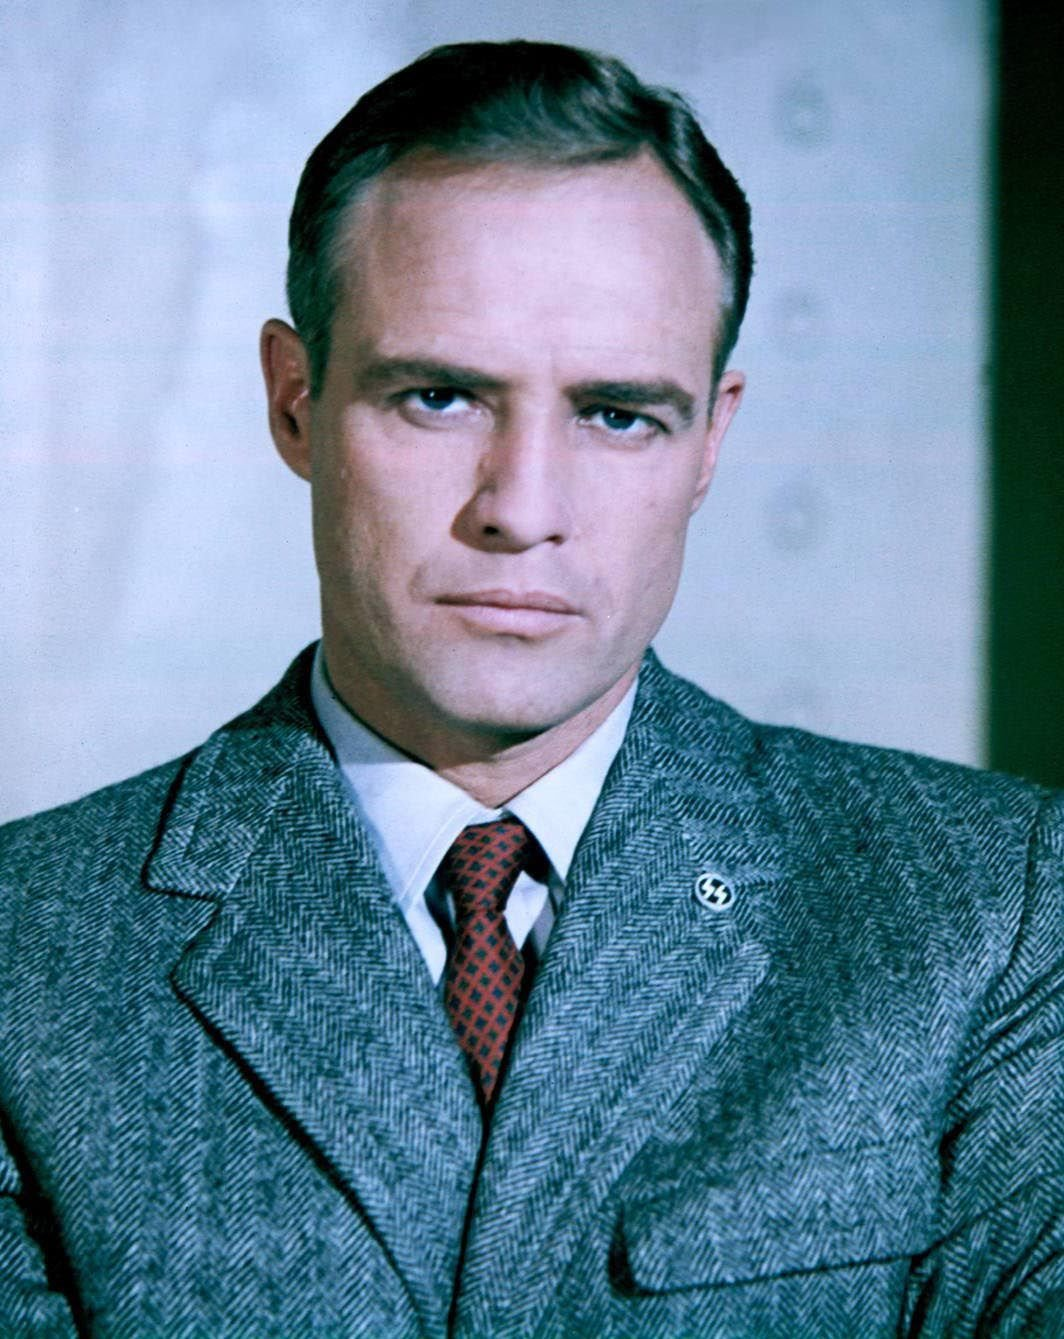 Publicity shot of Marlon Brando in 1967 | Source: Getty Images